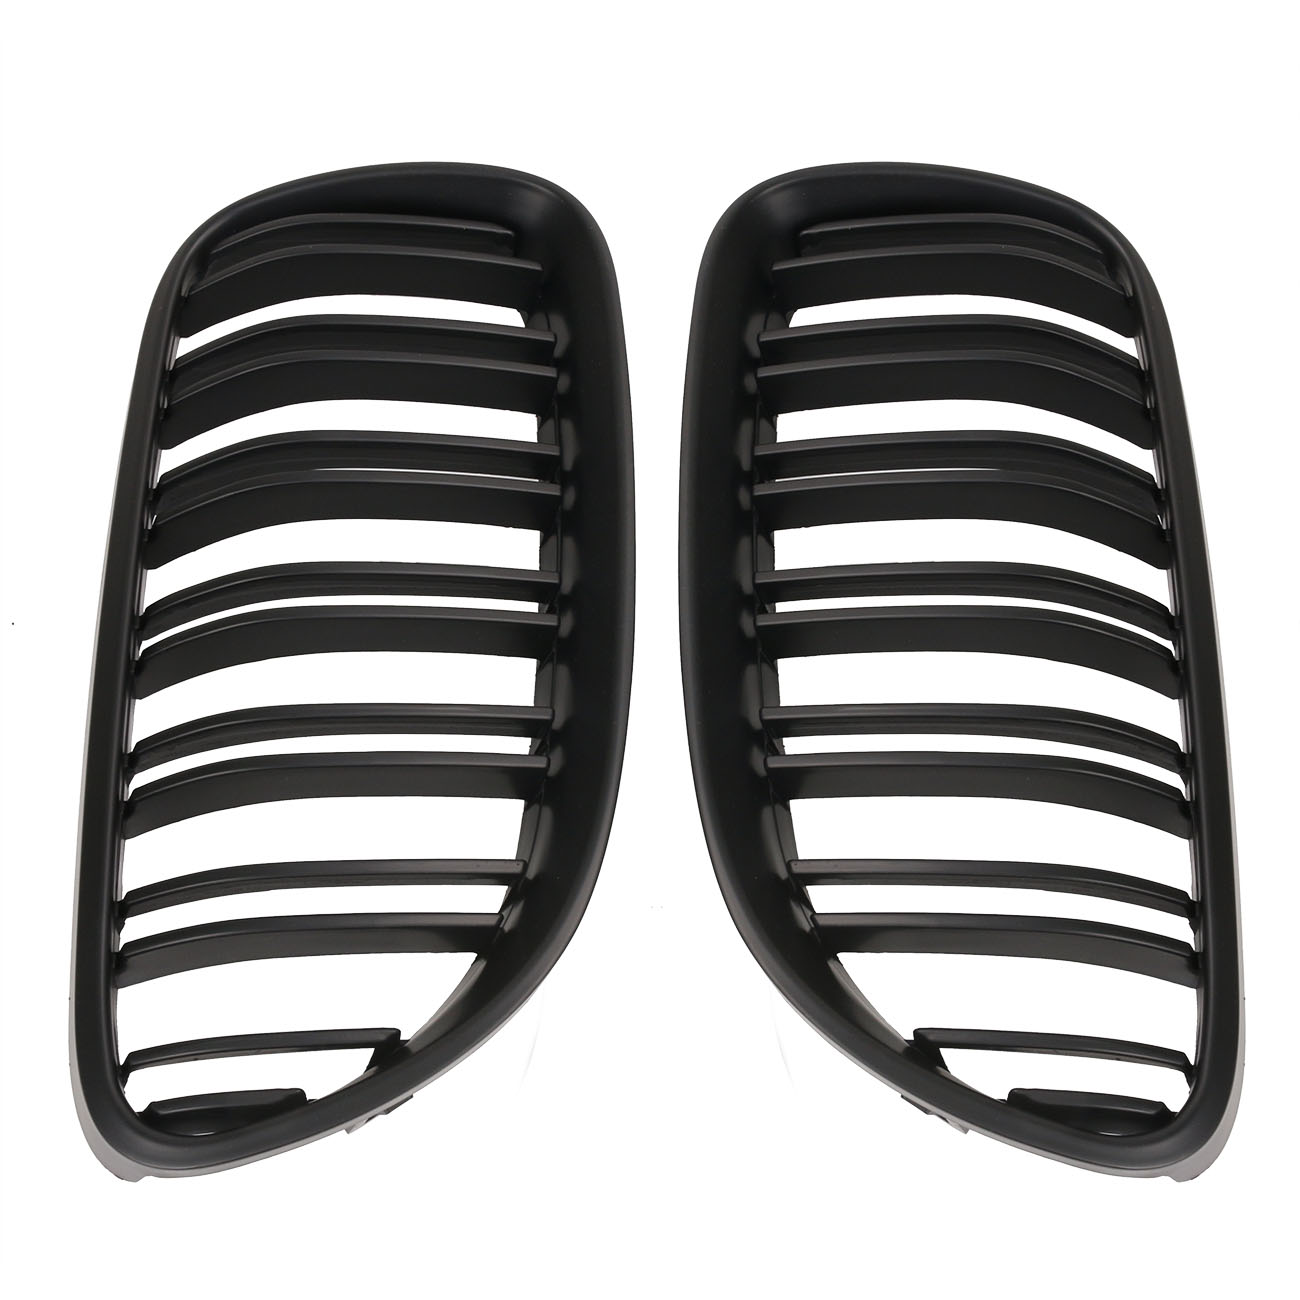 Double Slat Front Grille Radiator Grills For BMW E92 E93 LCI 318i 320i 328i 335i 2011 2012 2013 Car Exterior Parts .# CASE